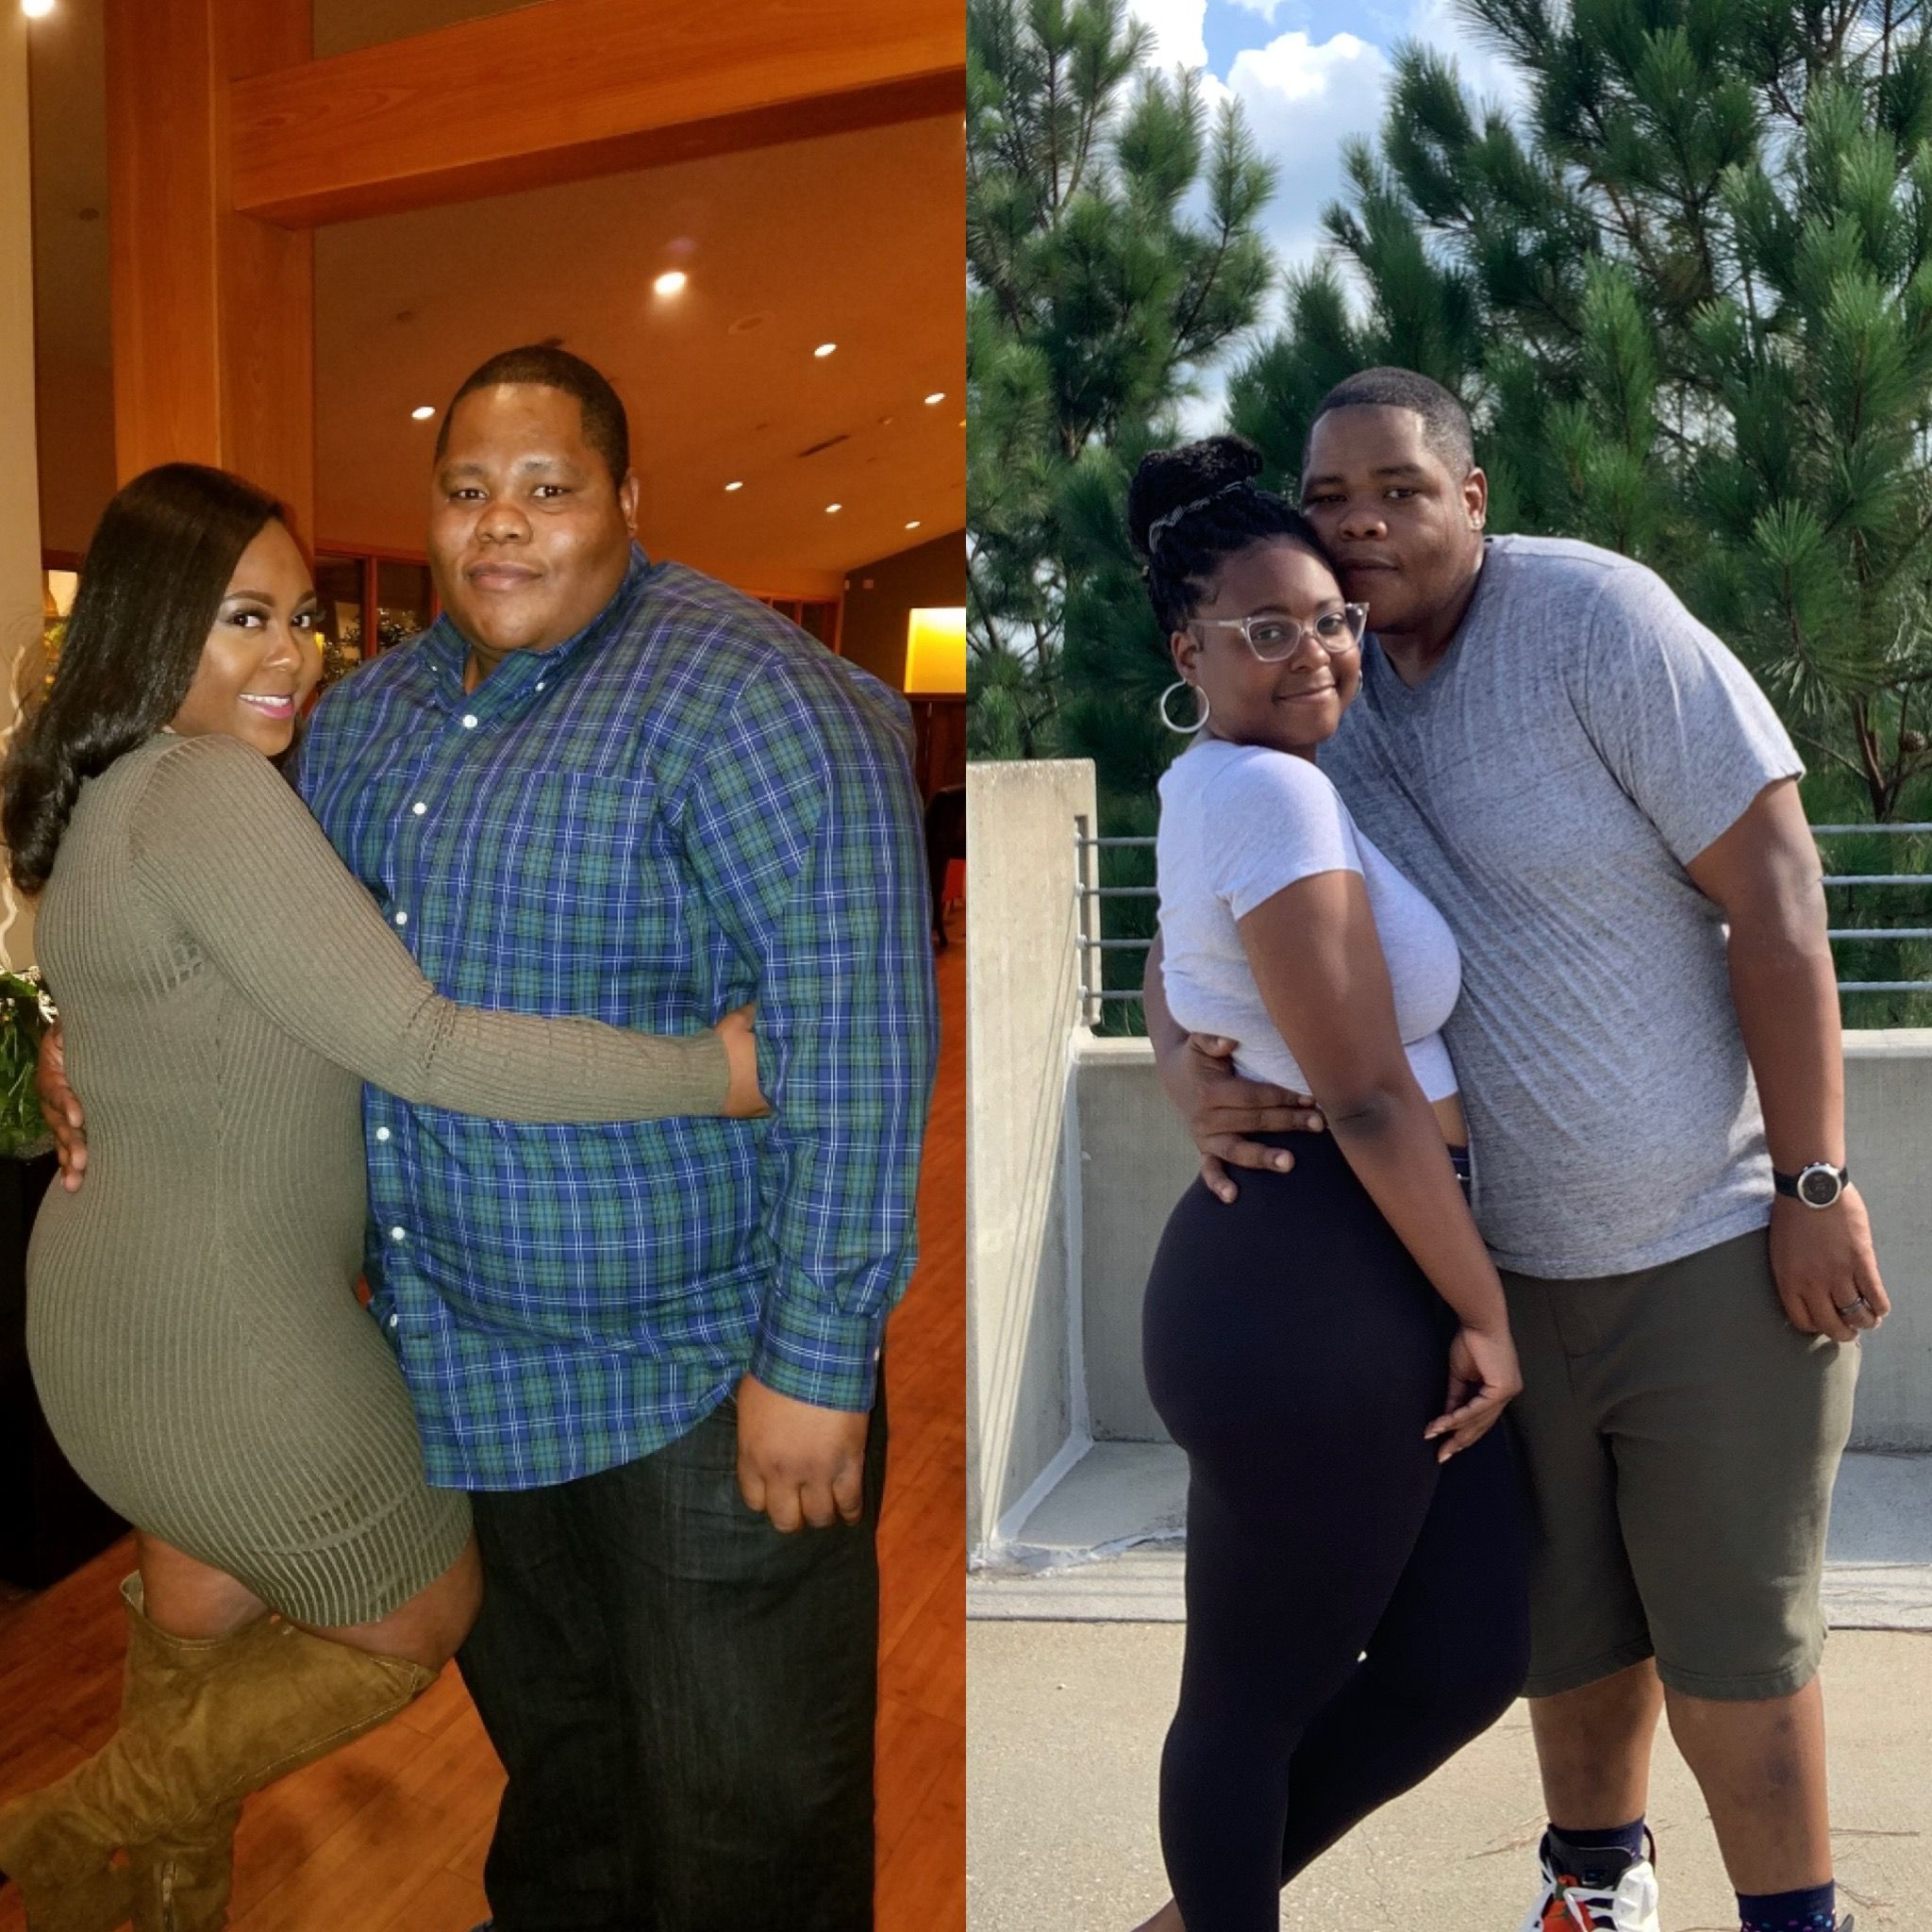 This Couple Set a Pandemic Goal to Start Running—and They Lost 115 Pounds Together